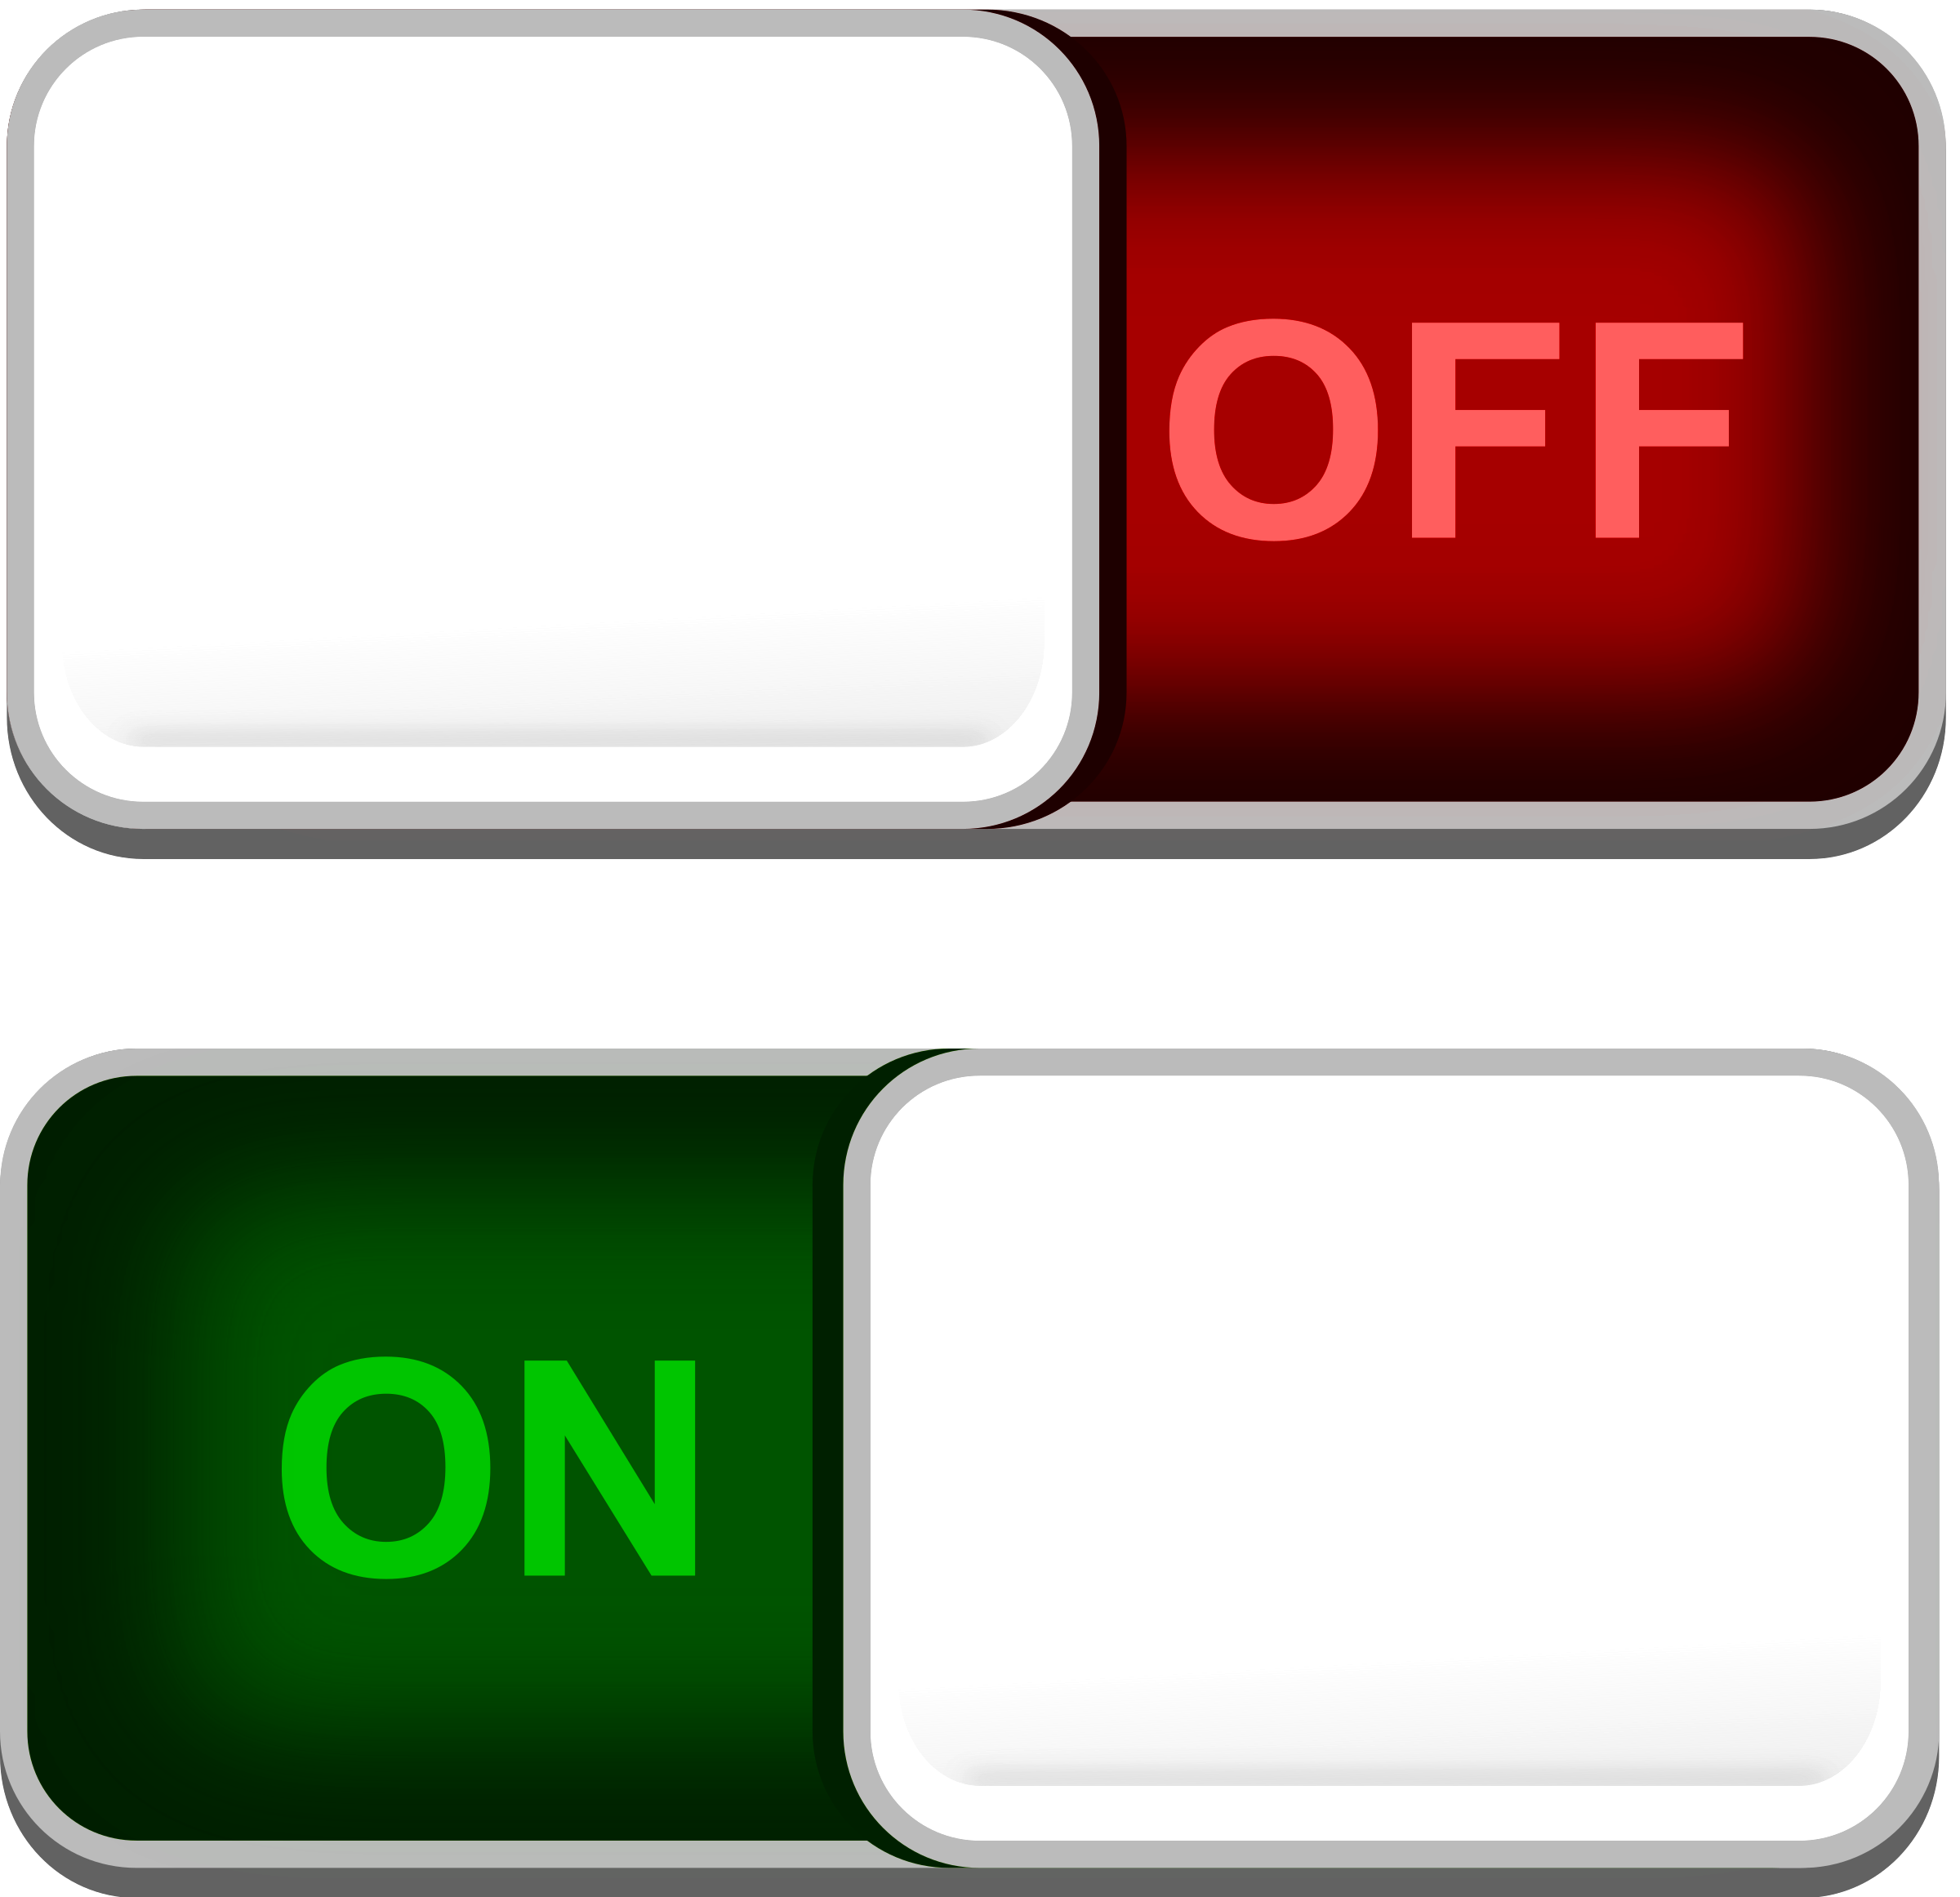 On off button clipart transparent library Component. switch symbol on off: Clipart Power Symbol Light ... transparent library